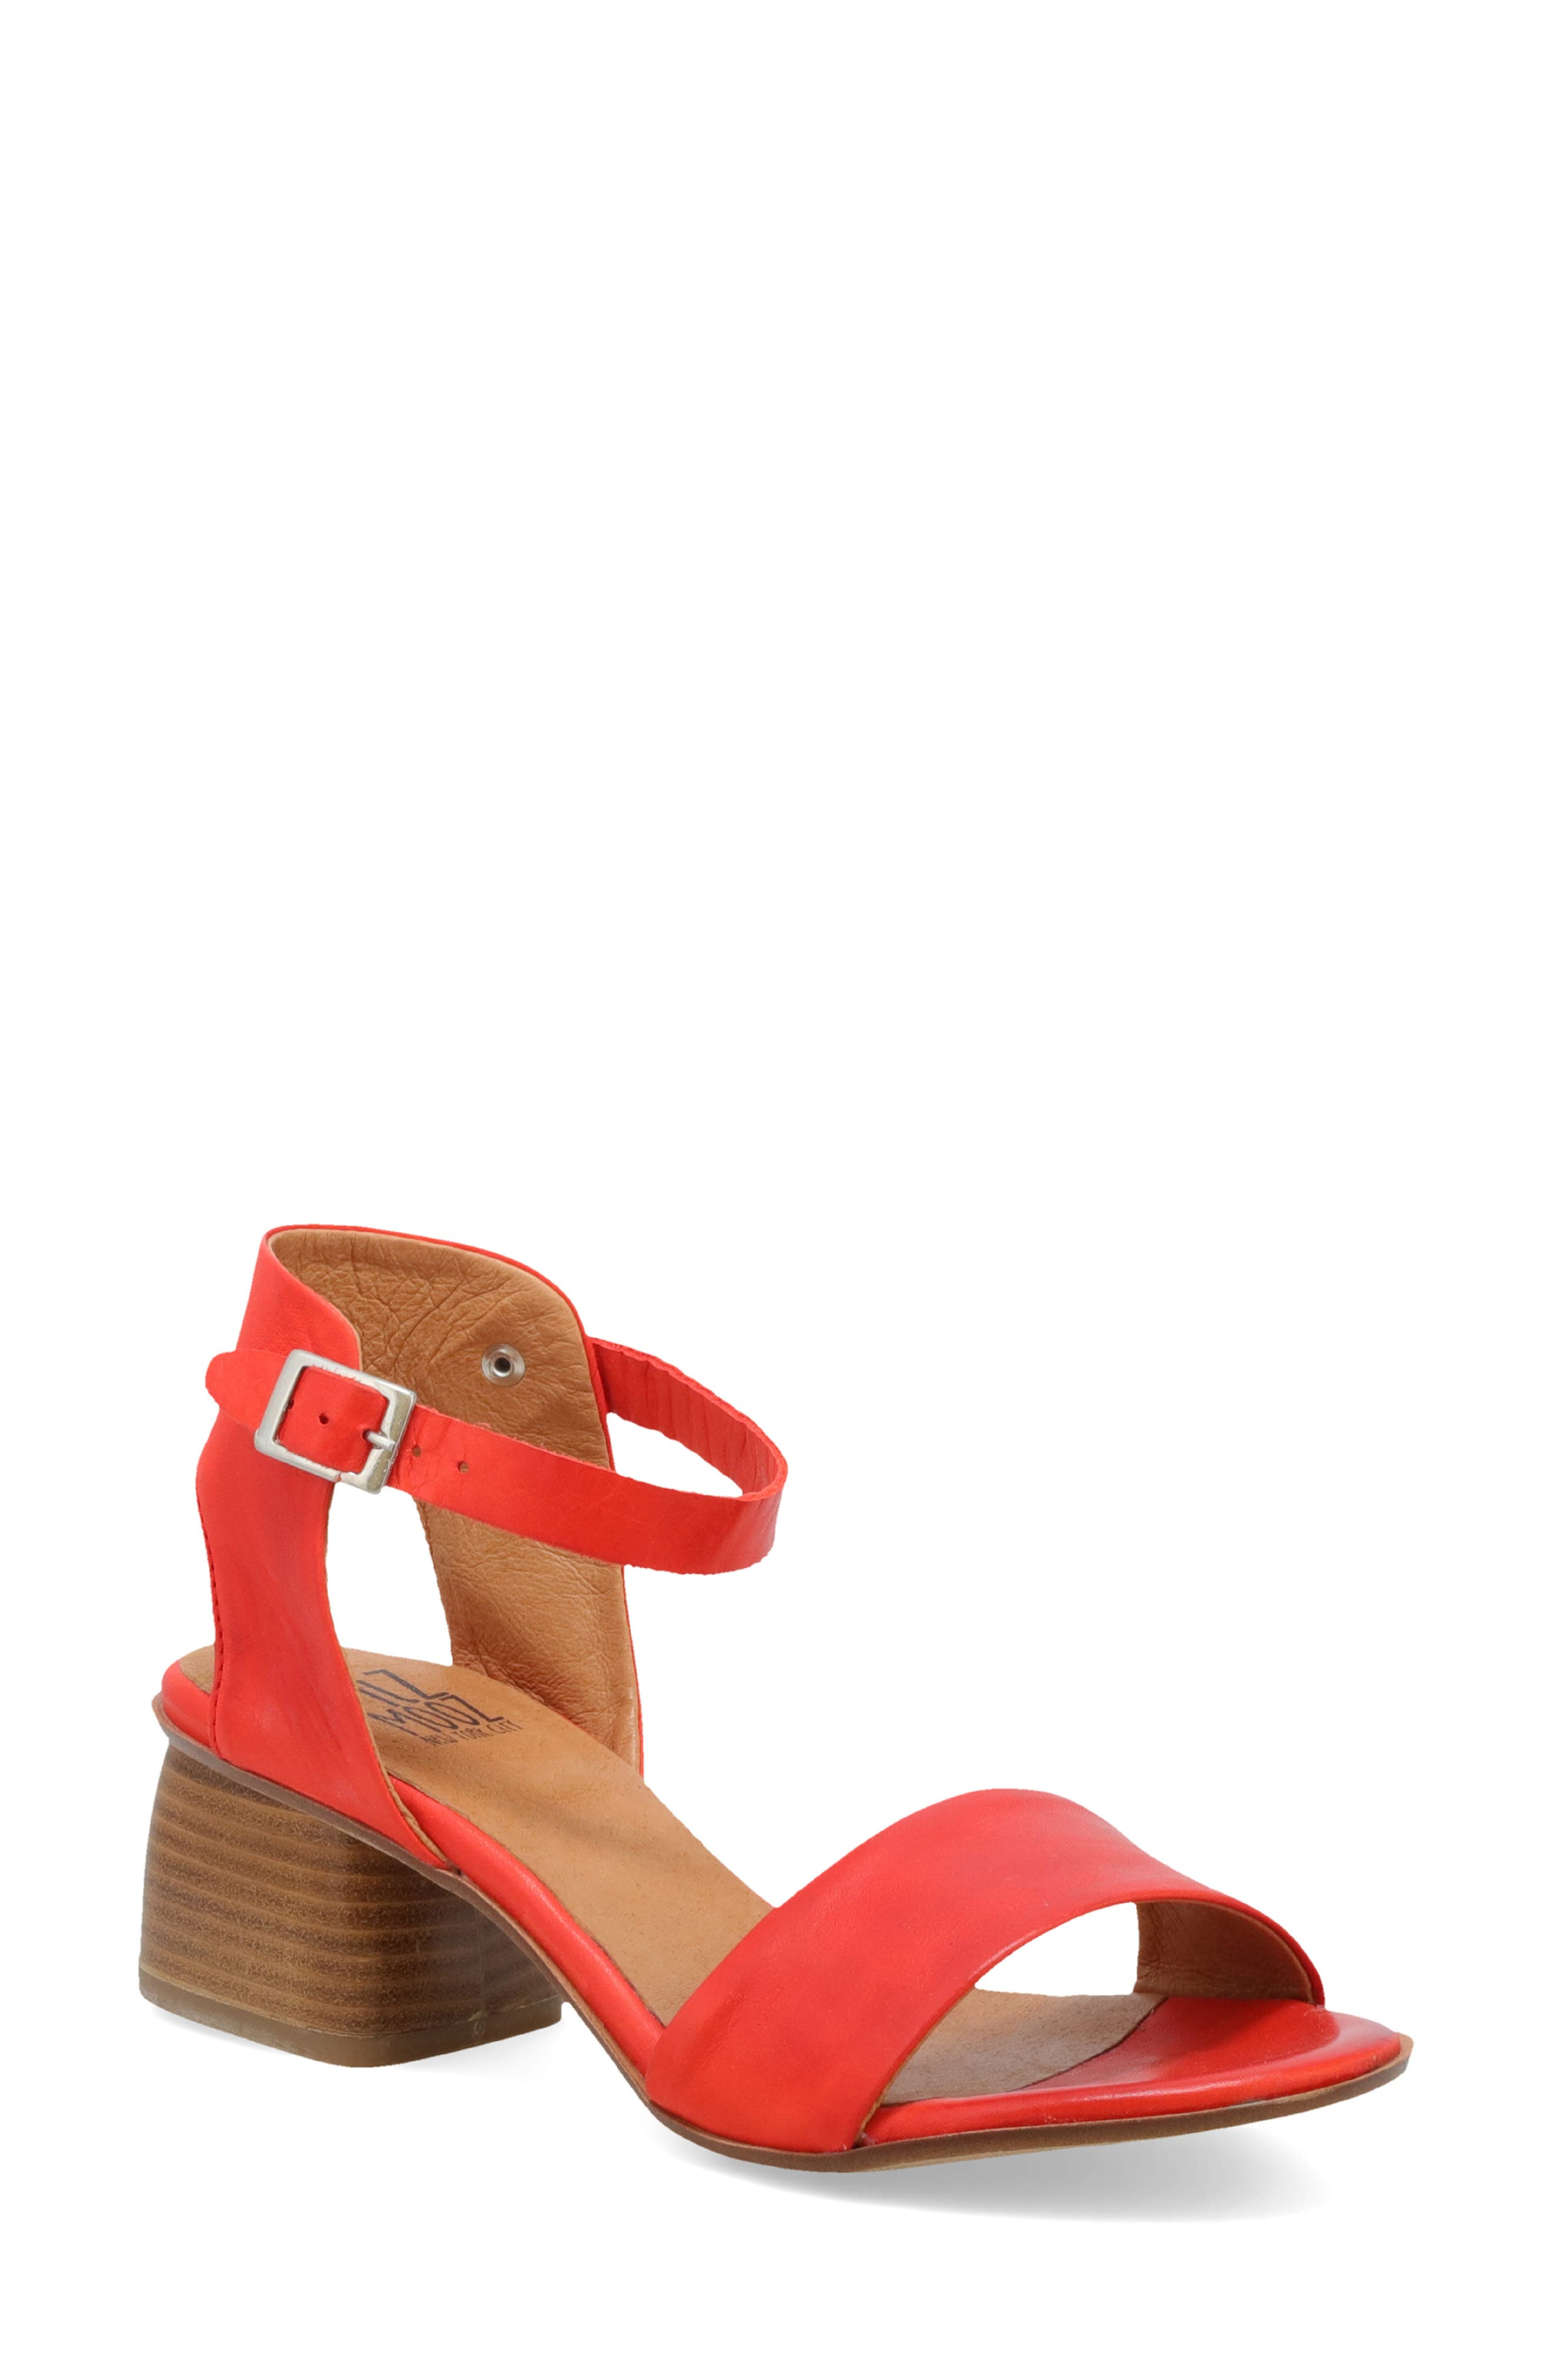 A contemporary stacked heel lifts a breezy sandal secured by a svelte strap at the ankle. Style Name: Miz Mooz Natalia Sandal (Women). Style Number: 5998693. Available in stores.